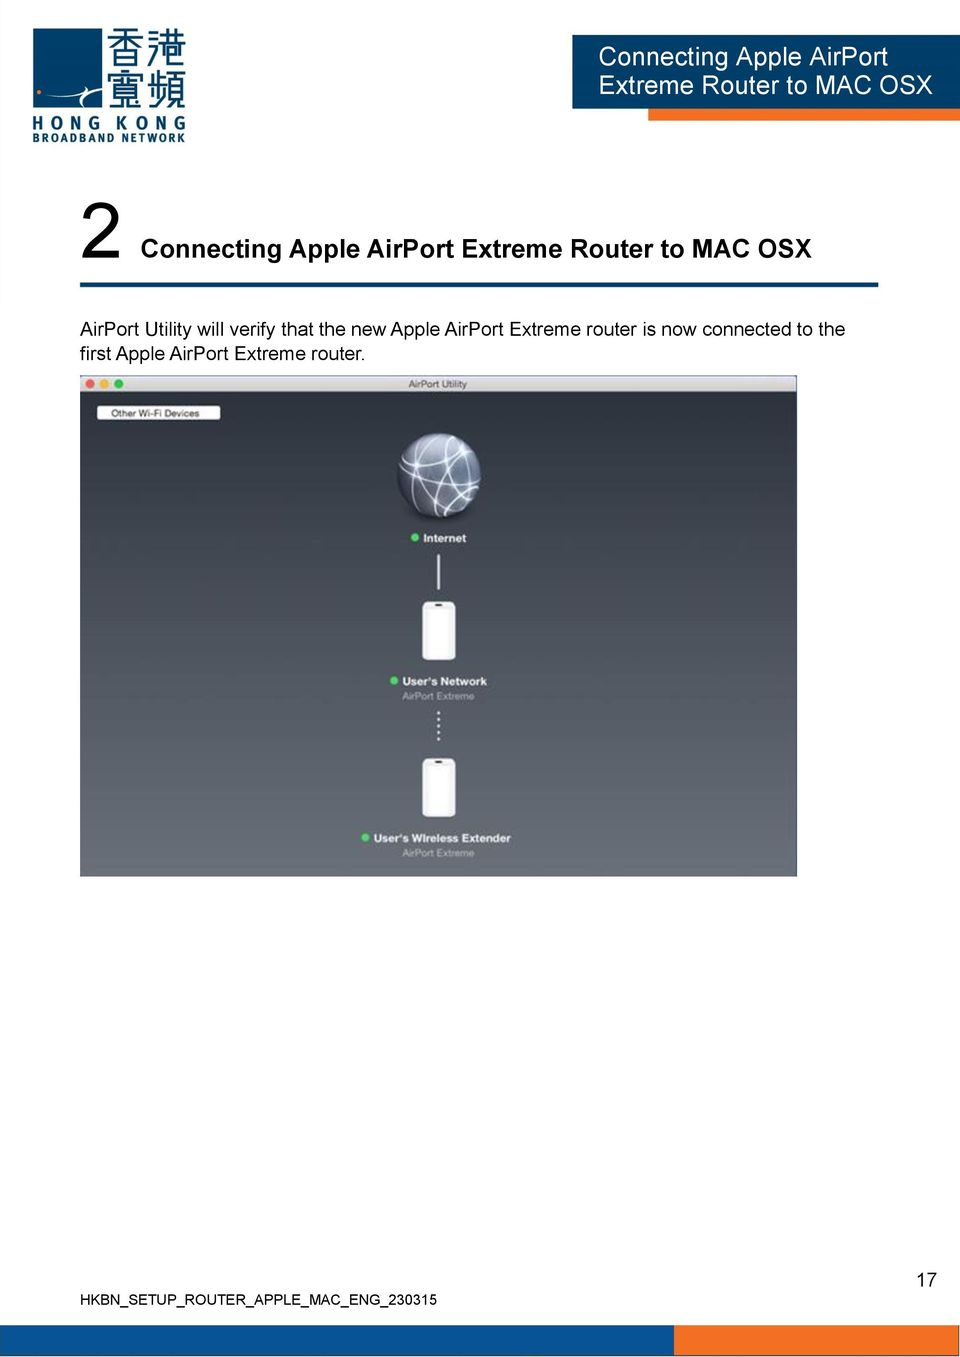 AirPort Extreme router is now connected